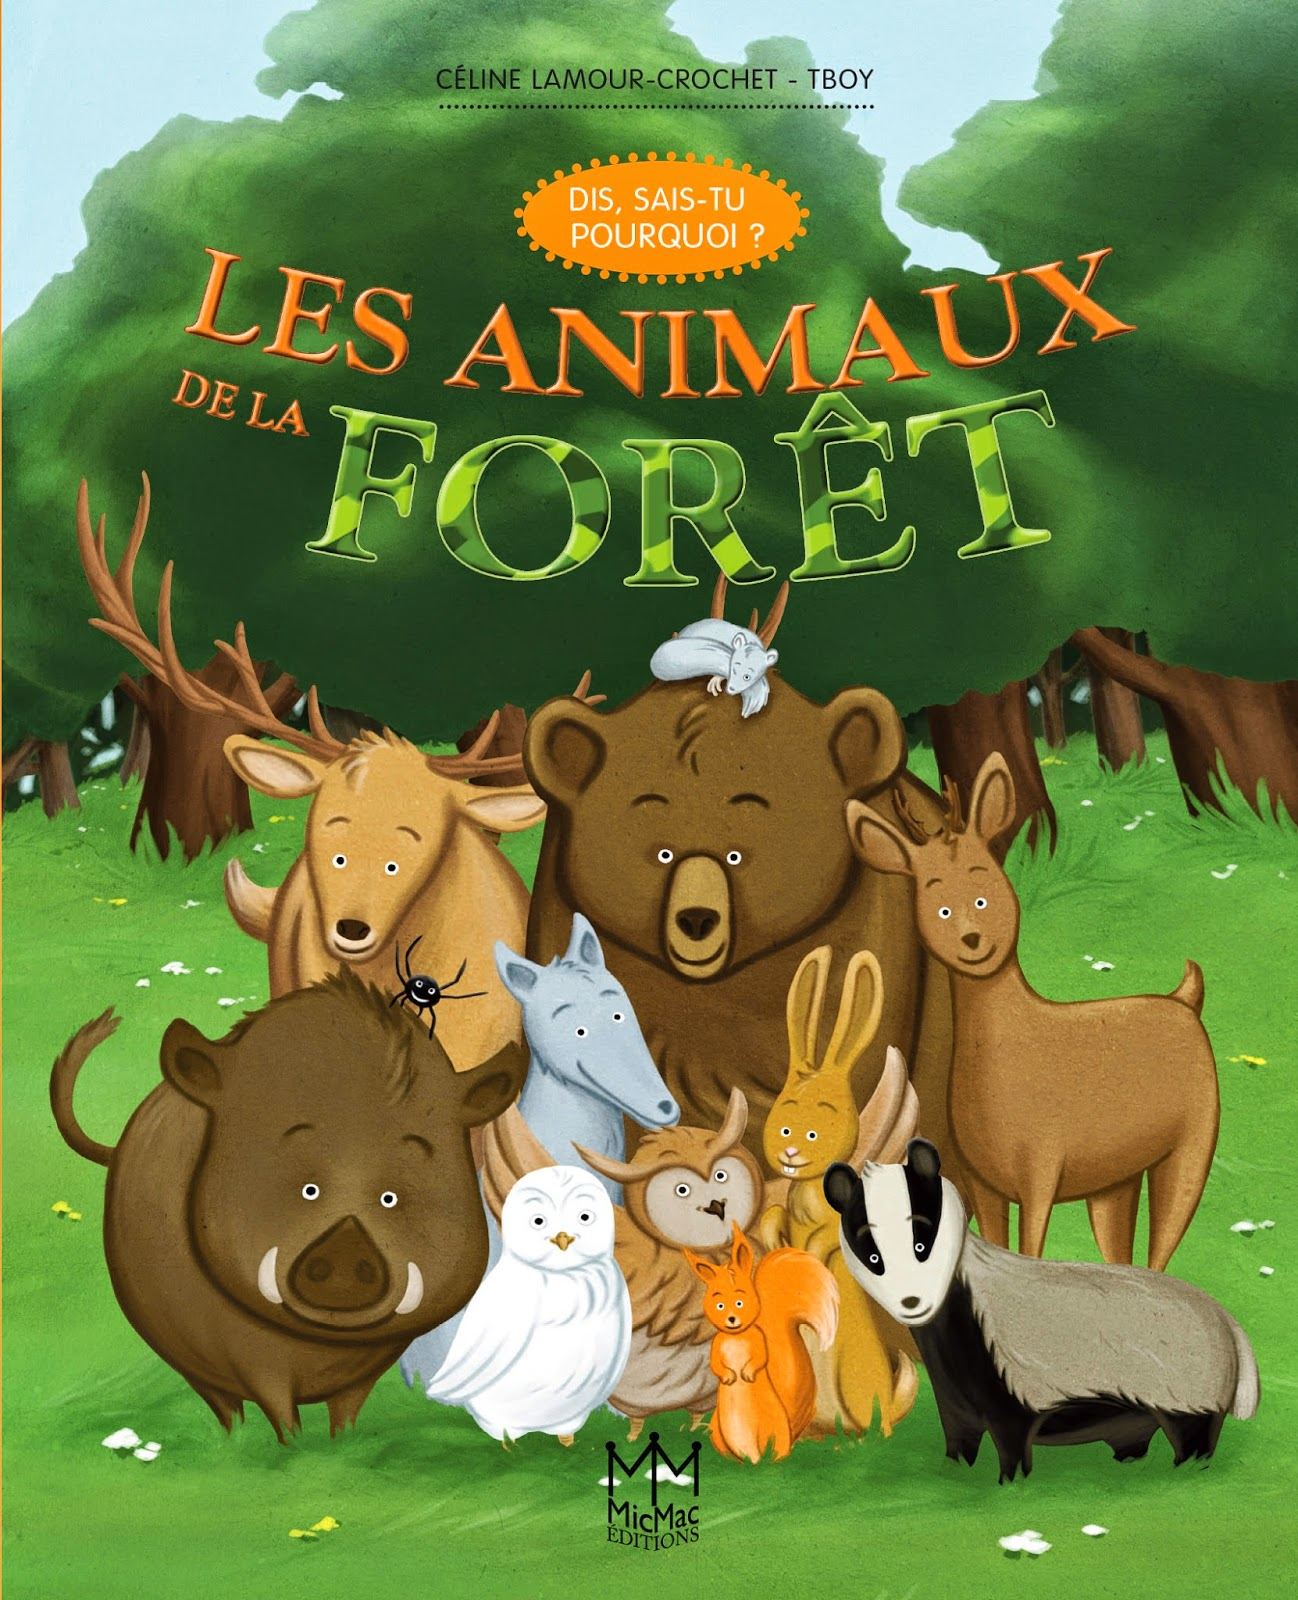 http://www.amazon.fr/animaux-for%C3%AAt-Dis-sais-tu-pourquoi/dp/236221284X/ref=sr_1_7?s=books&ie=UTF8&qid=1398674228&sr=1-7&keywords=c%C3%A9line+lamour-crochet